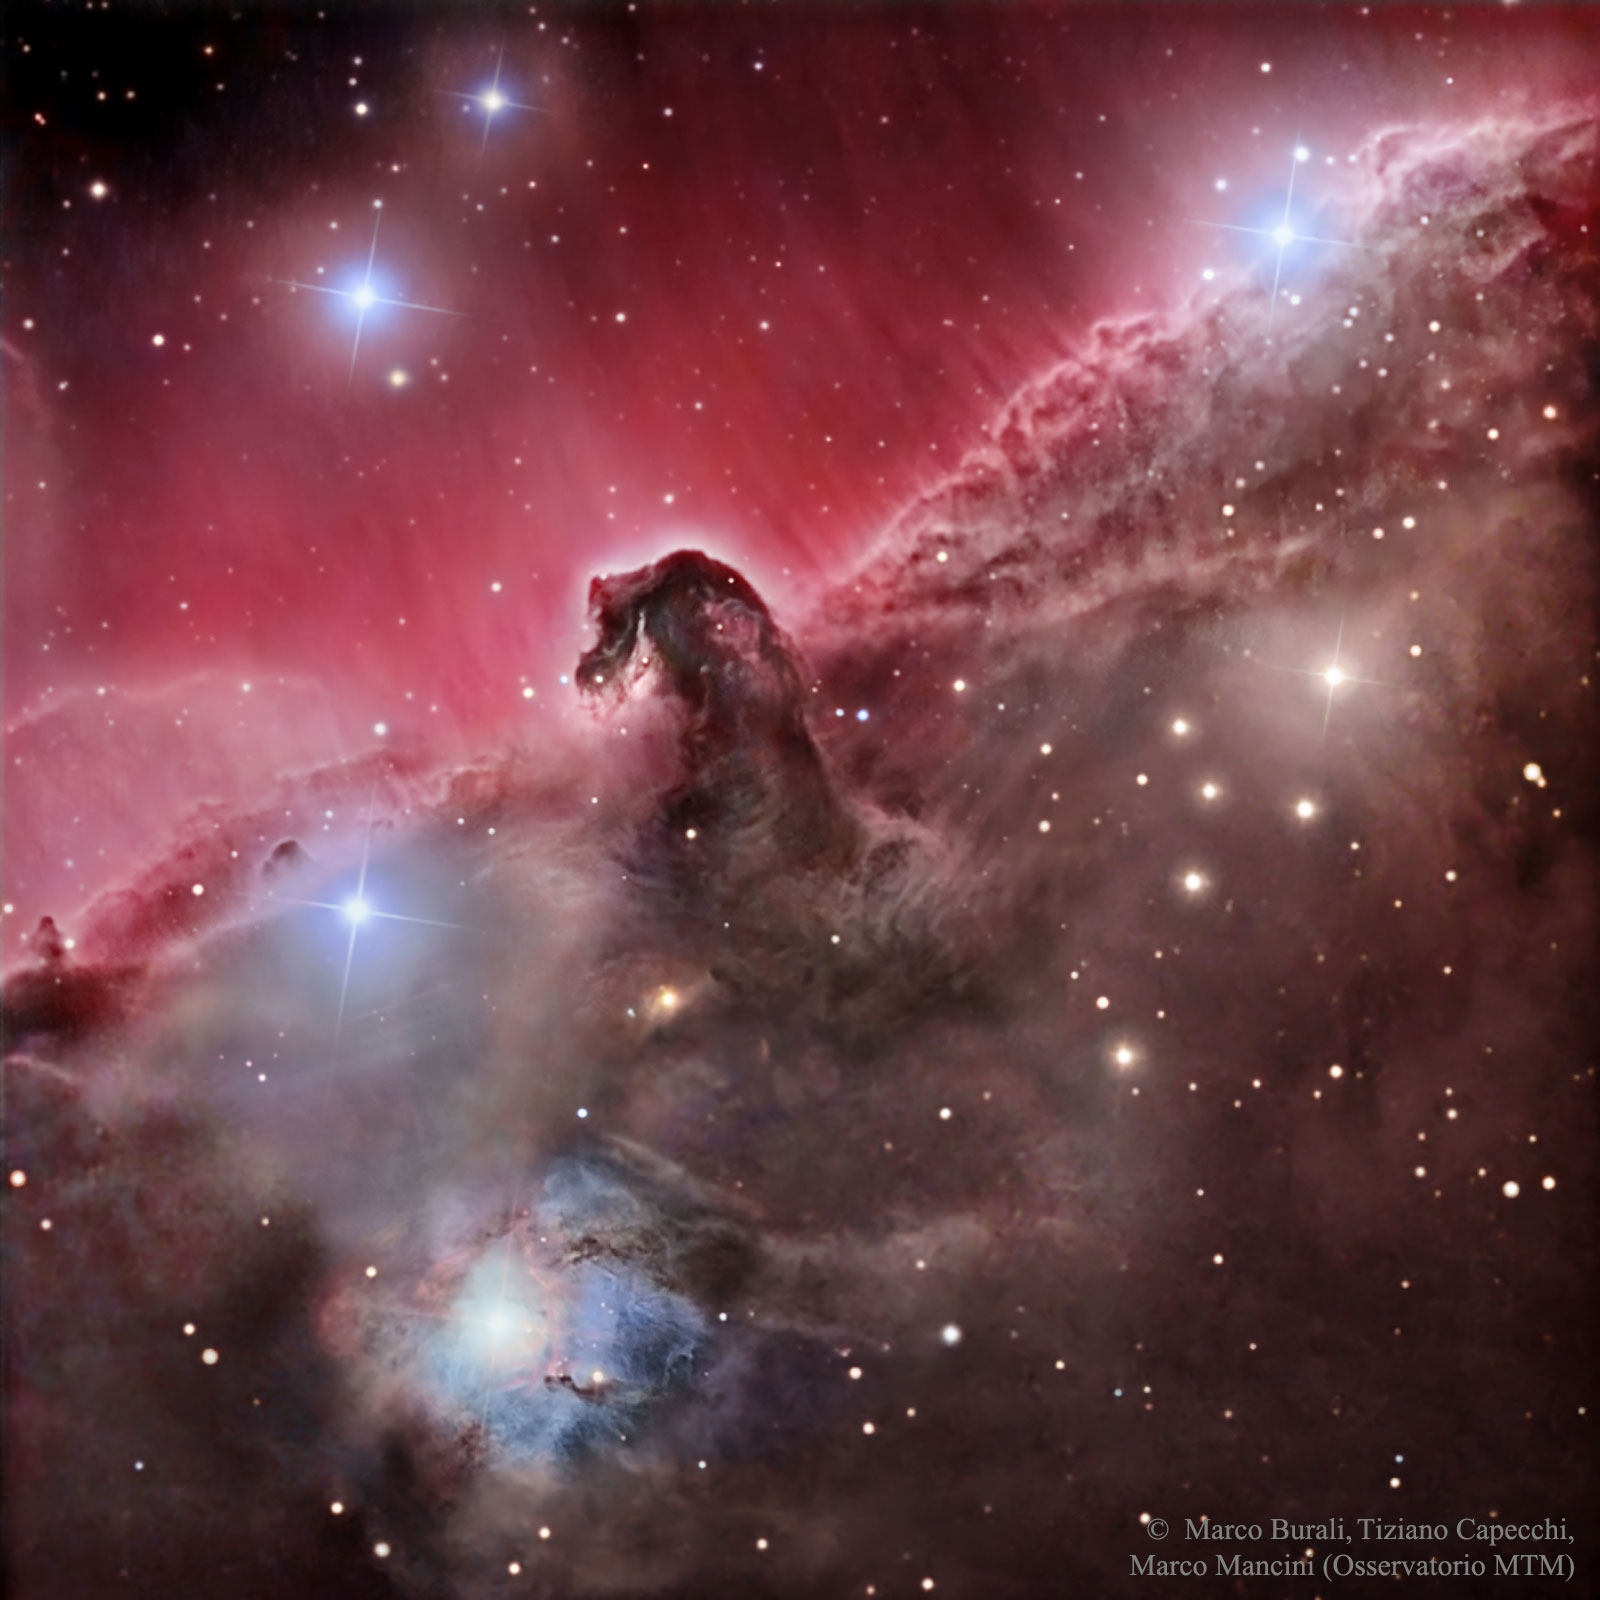 The horsehead nebula, a magnificent interstellar dust cloud in the constellation Orion.